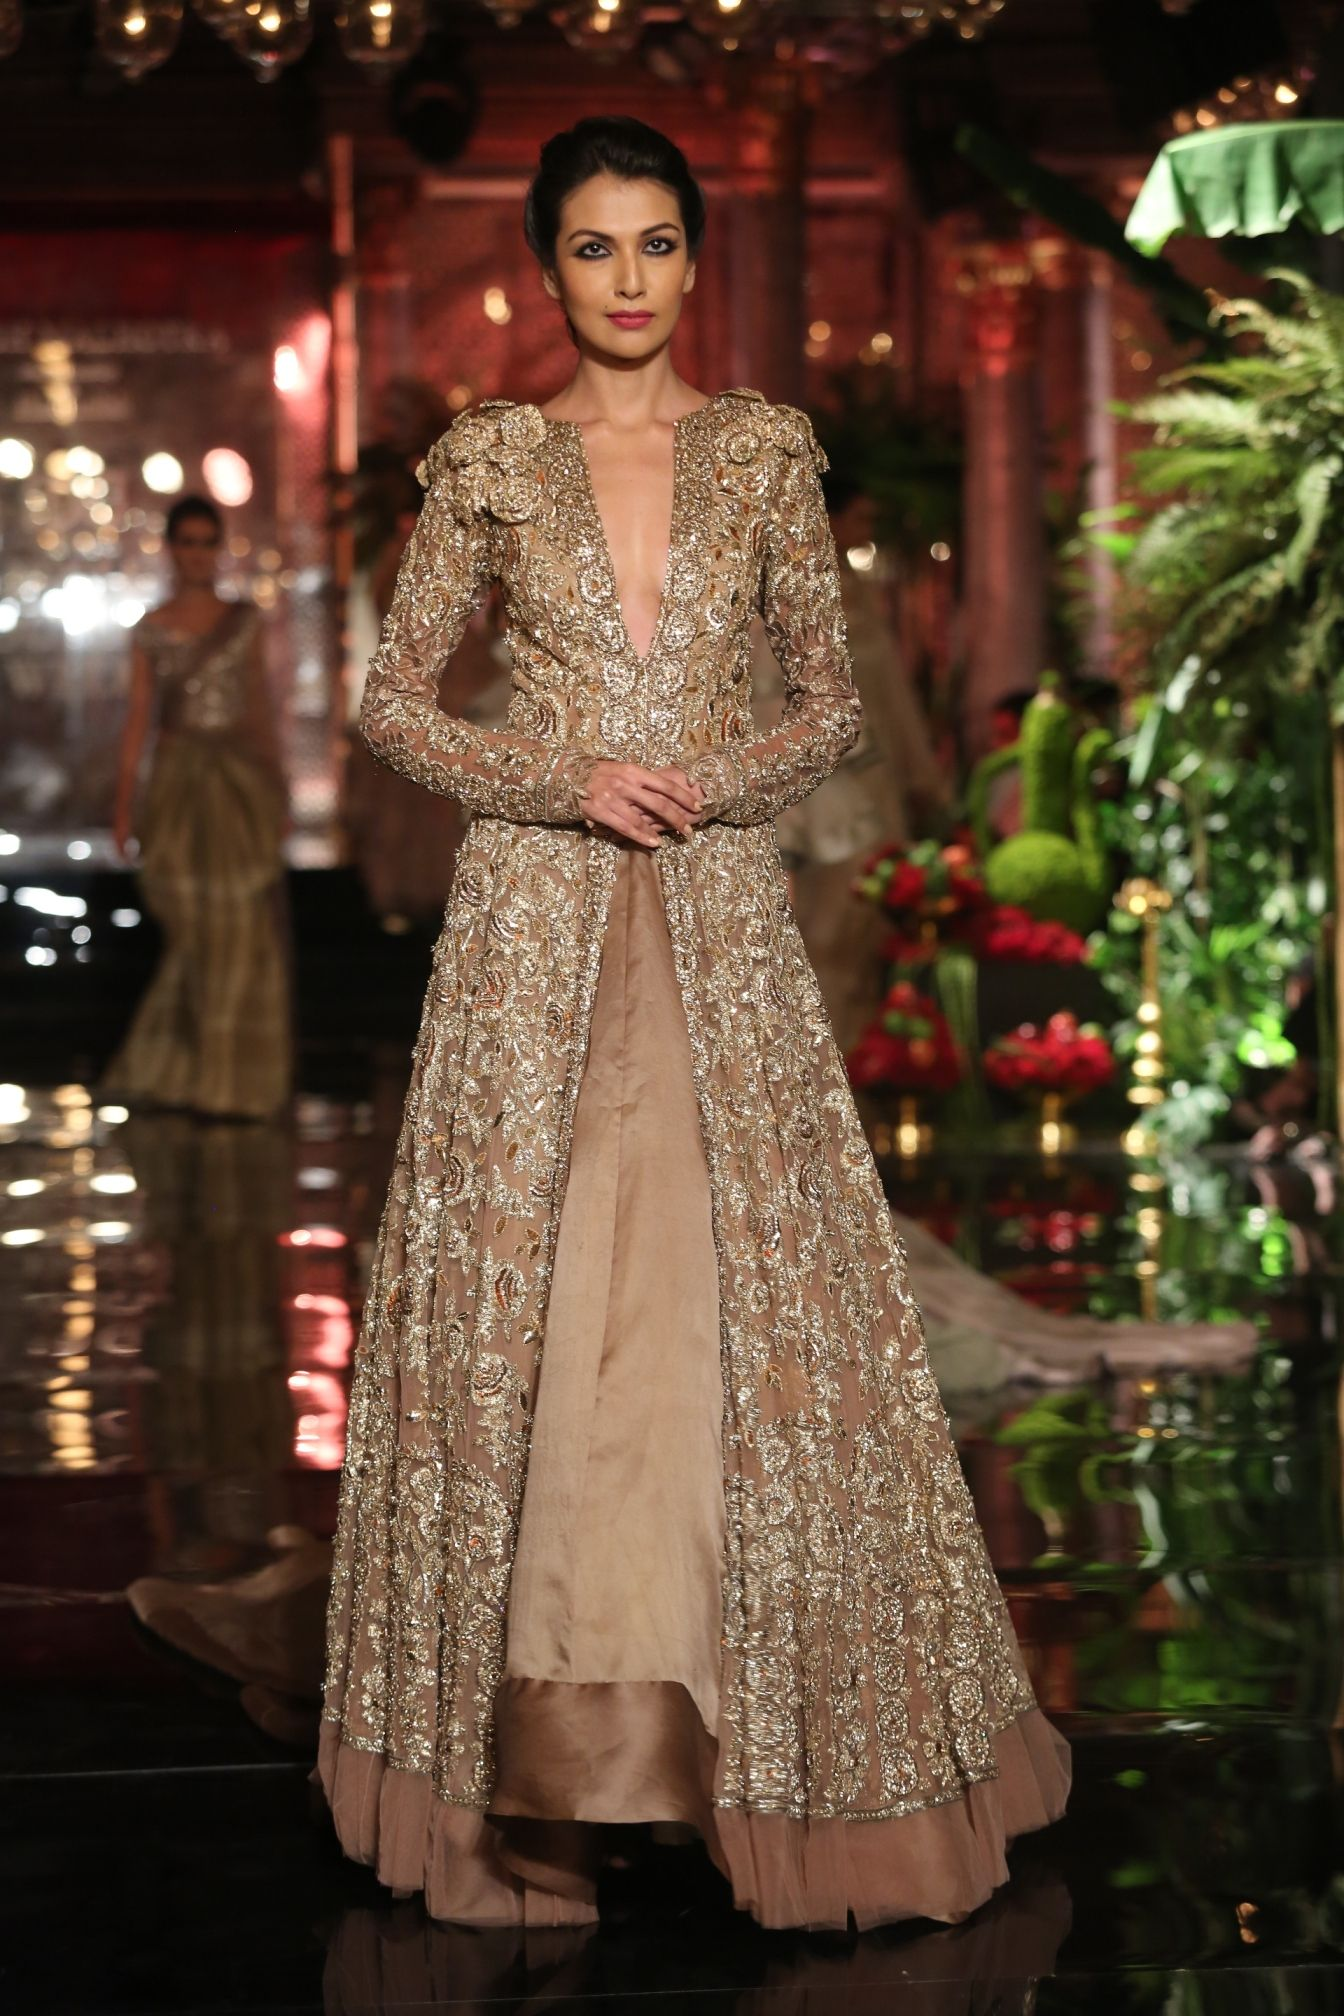 Manish malhotra opens fdci india couture week with uthe persian